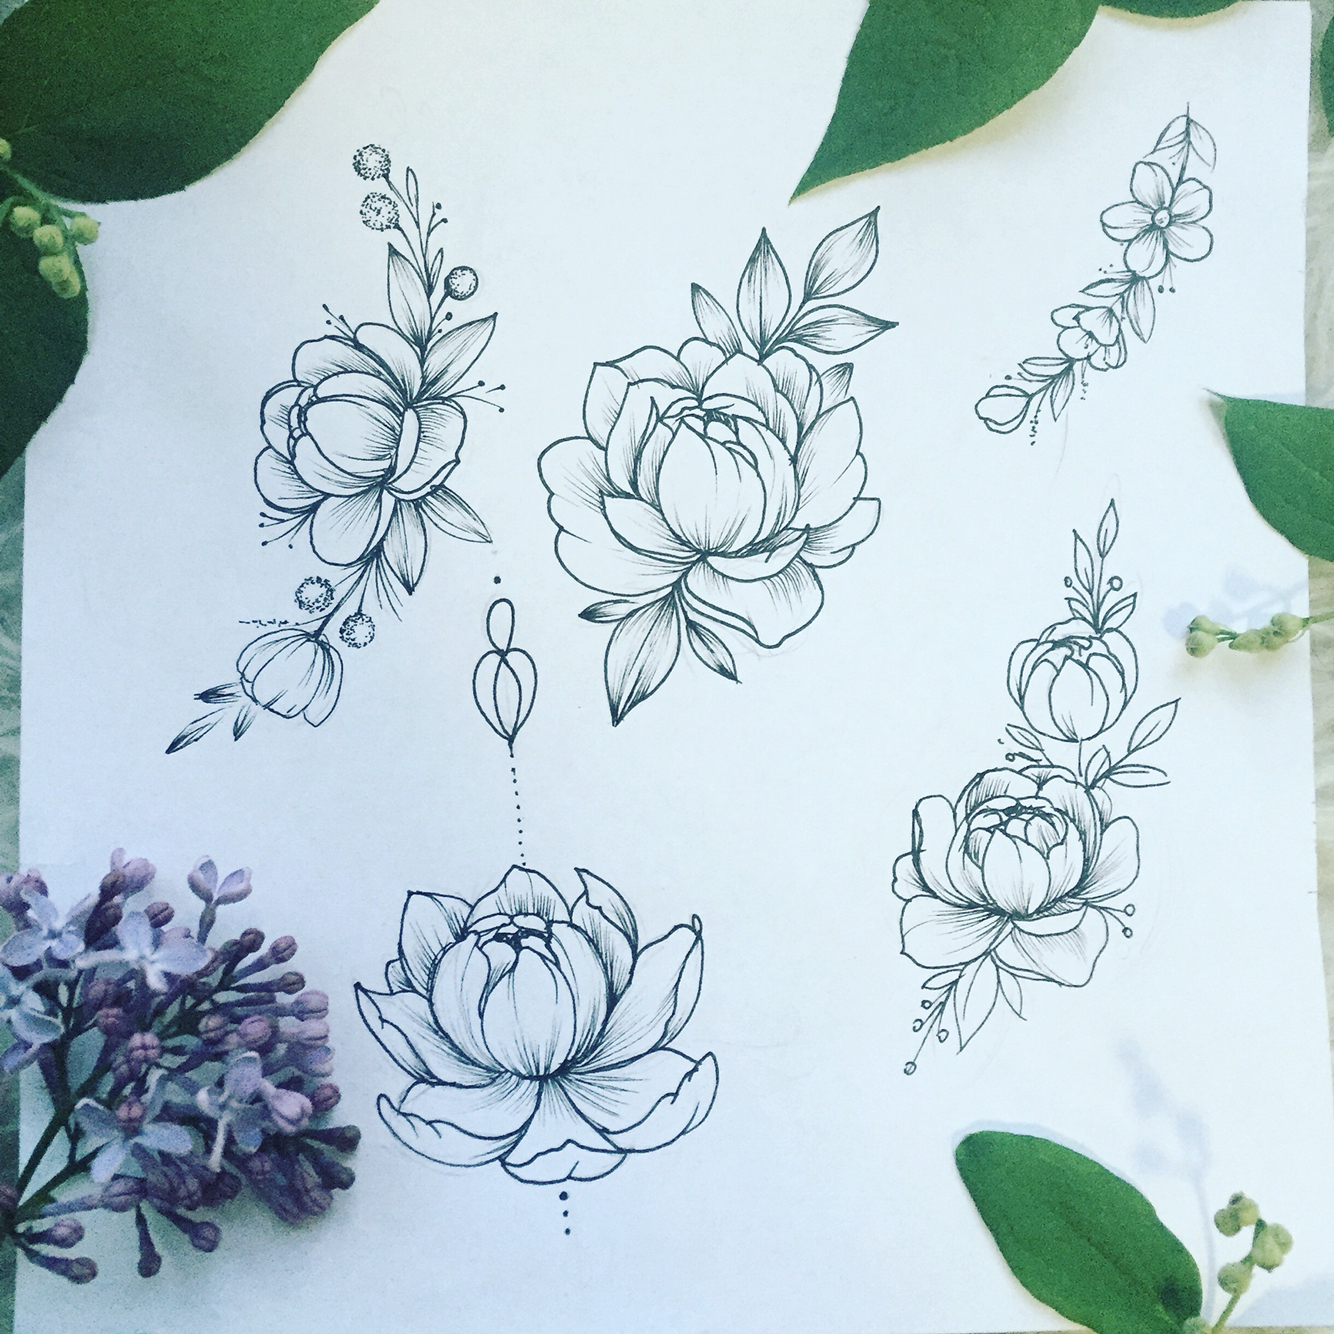 Drawn peony delicate flower Peonies#tattoo#sketch#draw sketches  Peonies Pinterest